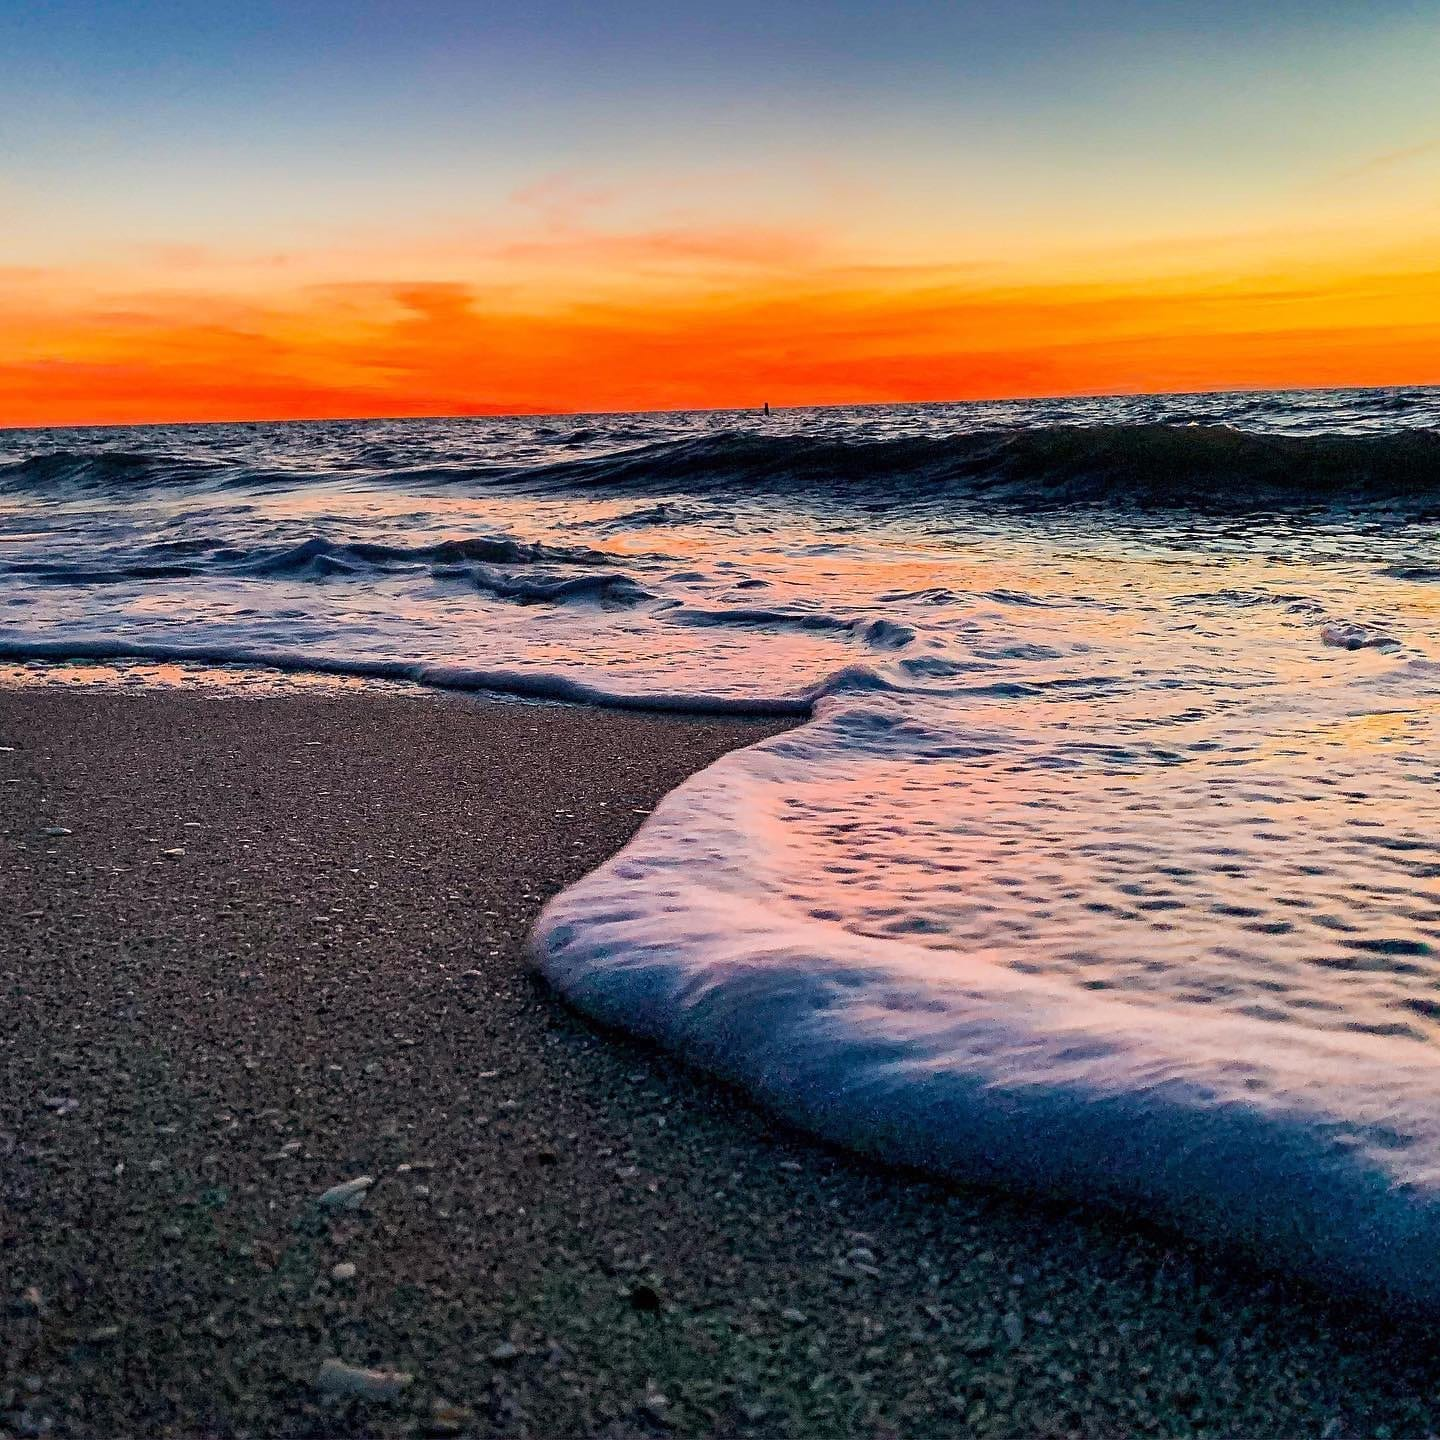 Photo of the Ocean at Sunset